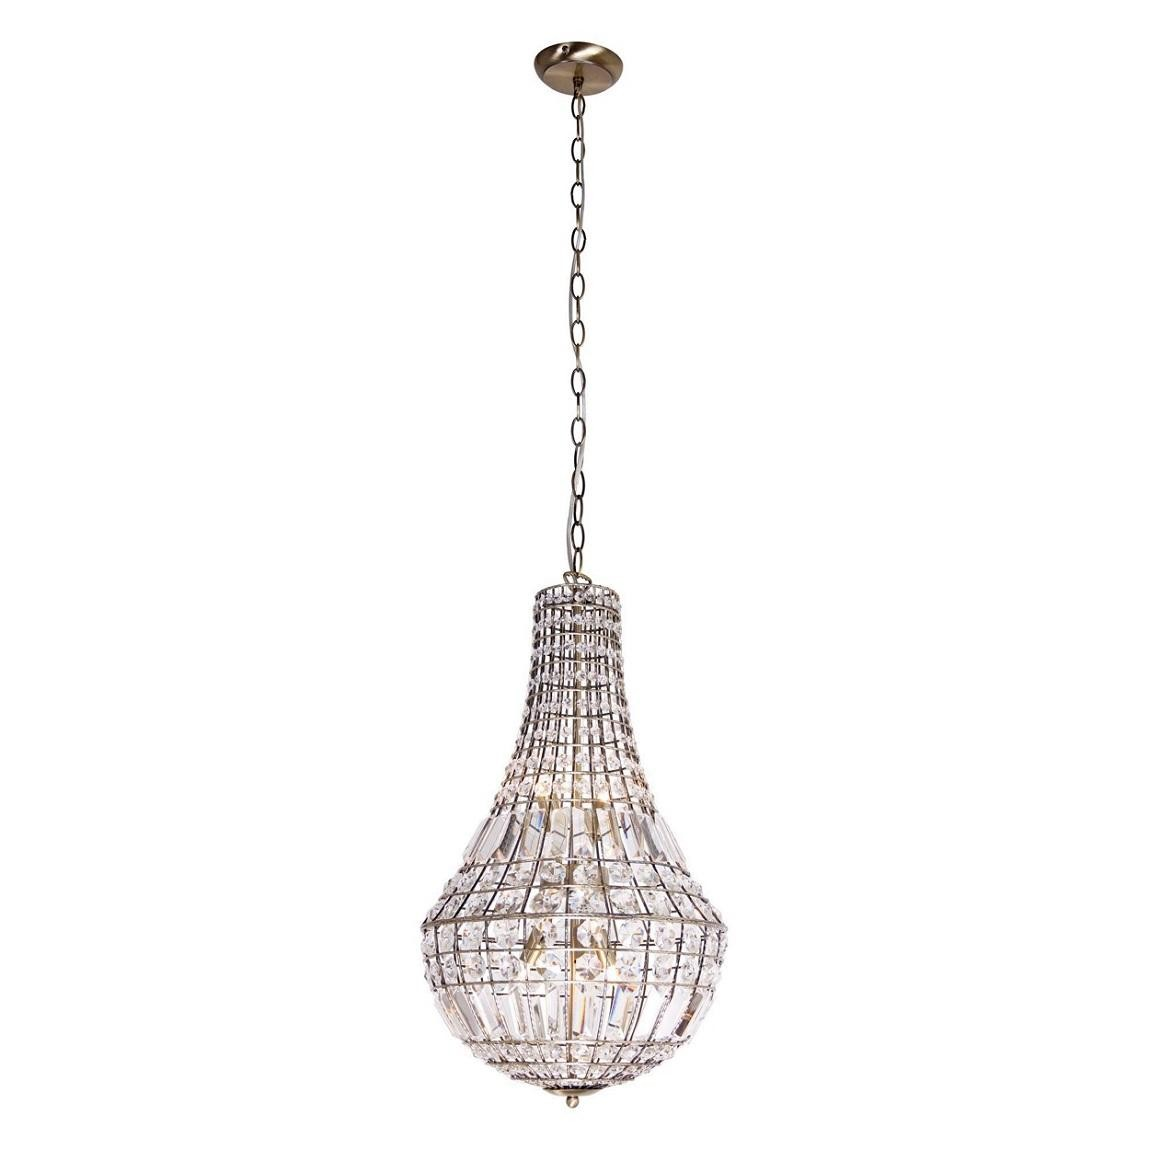 Debenhams Home Collection 'Emmett' Pendant Ceiling Light